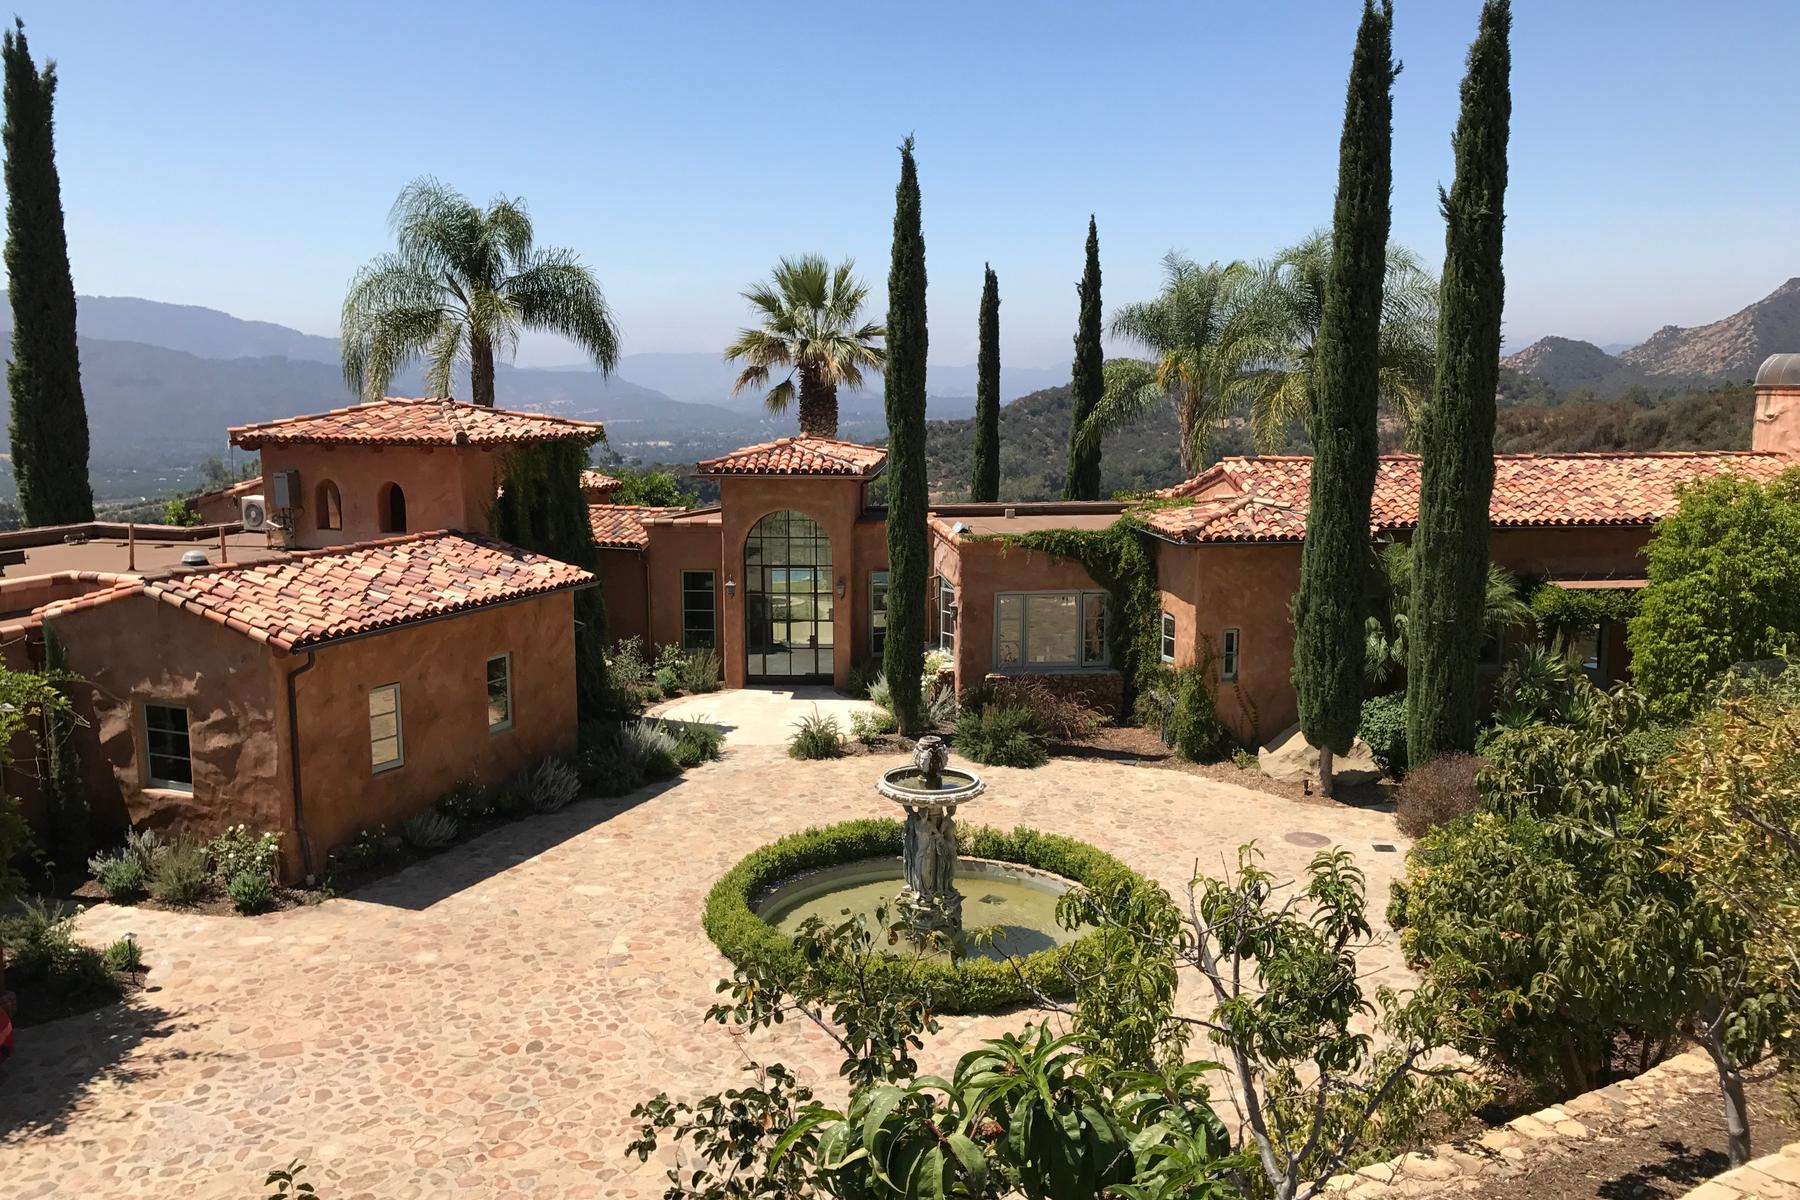 Single Family Homes for Sale at 2661 Ladera Road Ojai, California 93023 United States